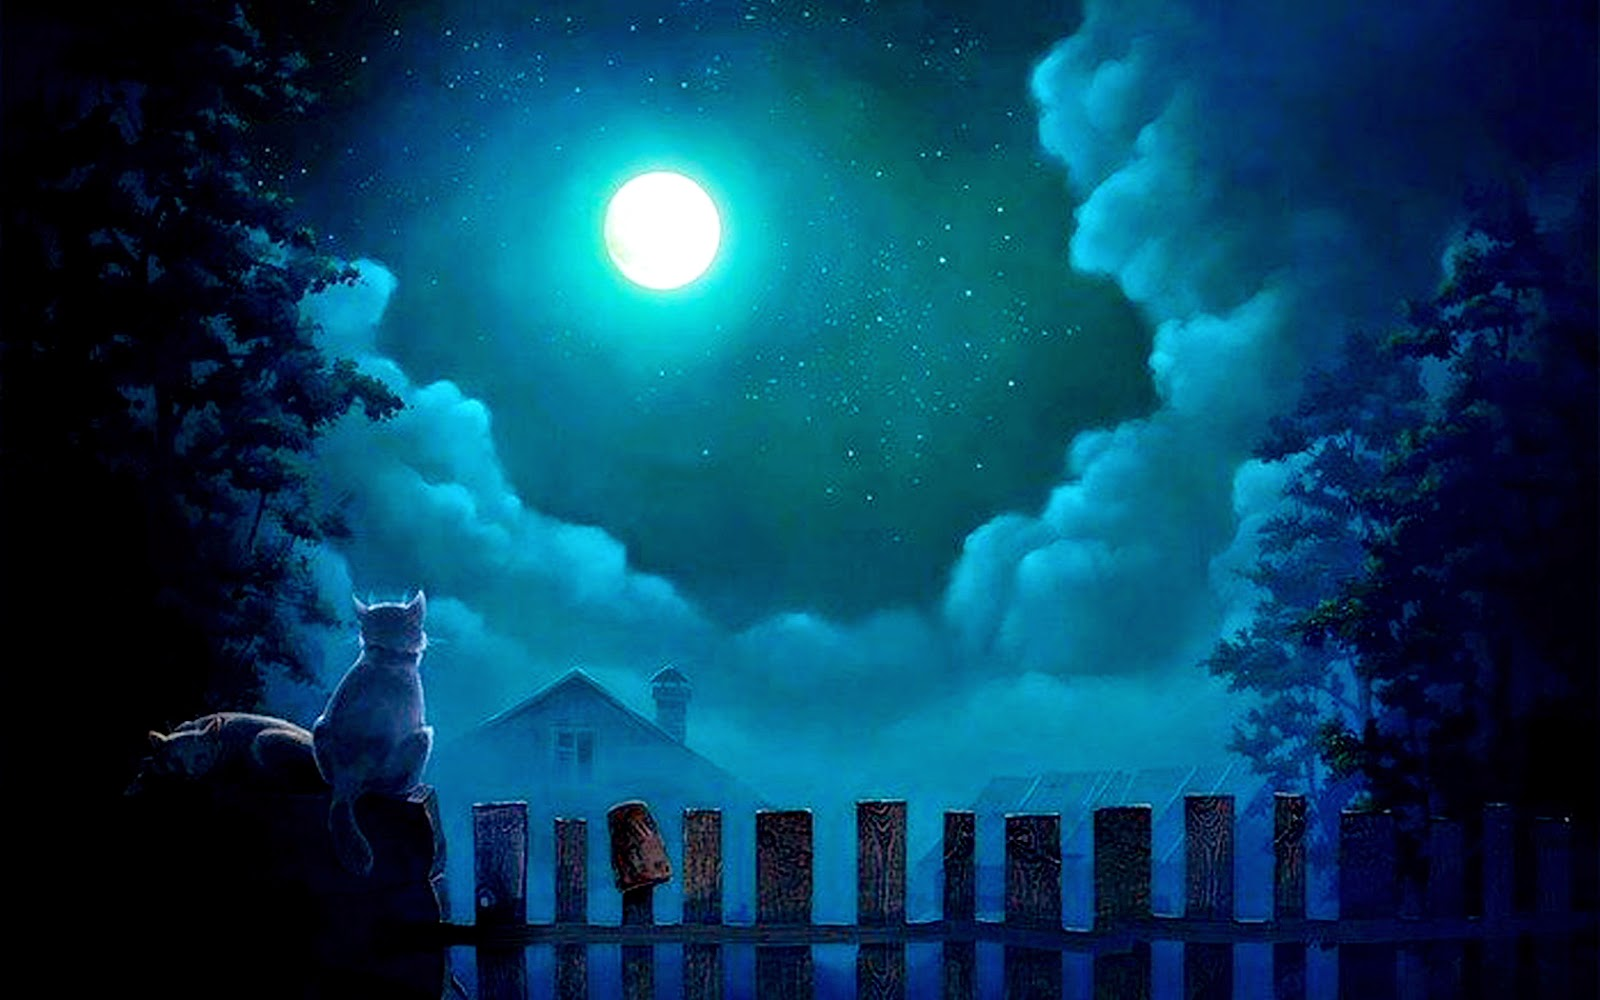 Cat Night Lights Beauty Of Moonlight At Night Sky Near Sea Poetic Nature Images